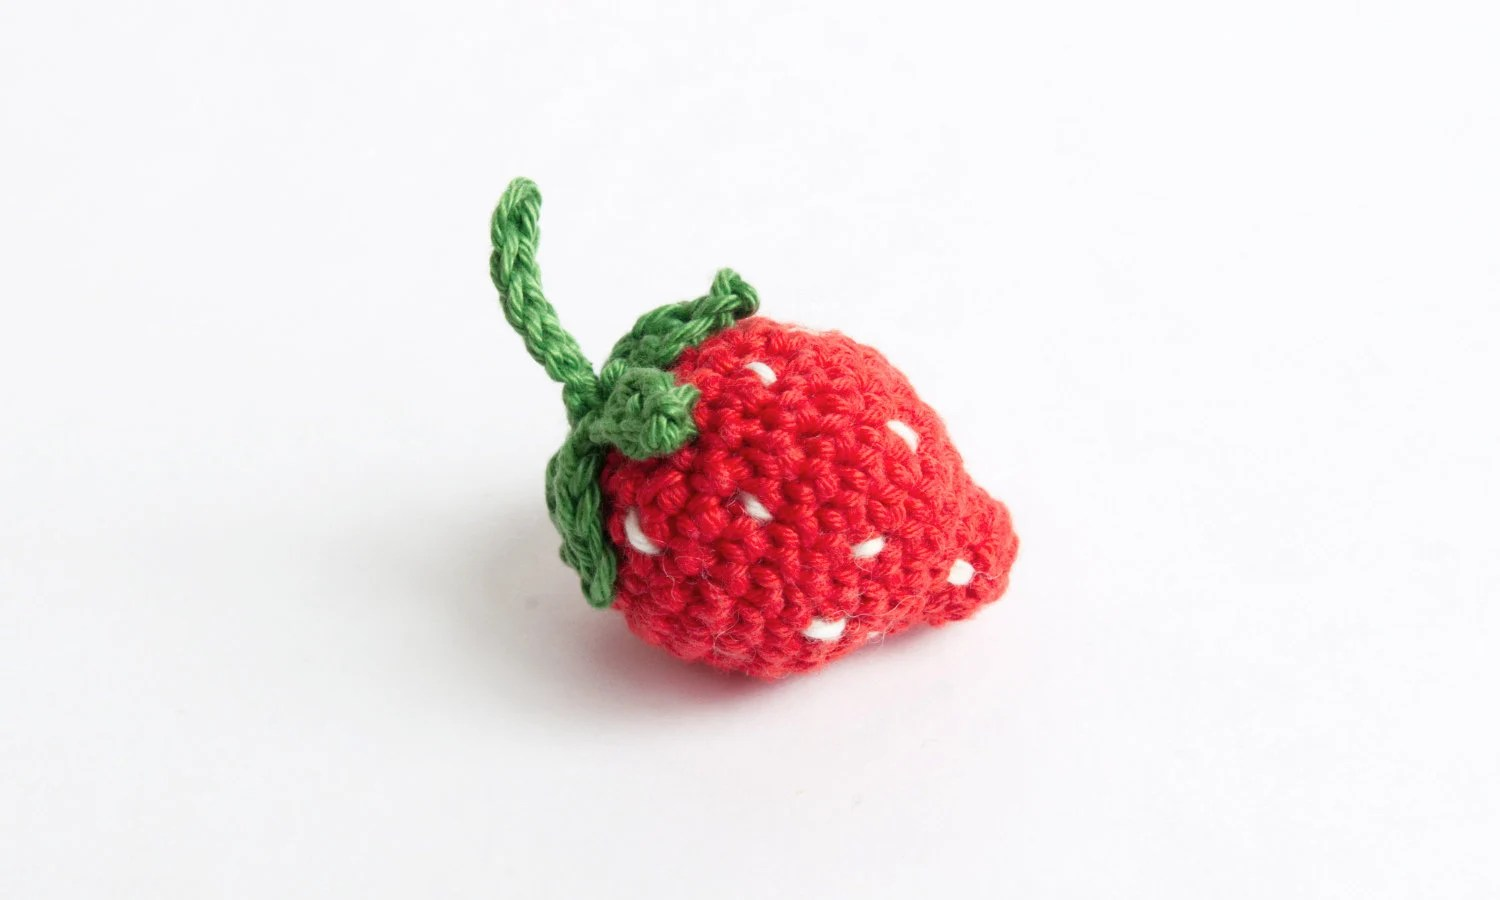 Strawberry crochet image 2